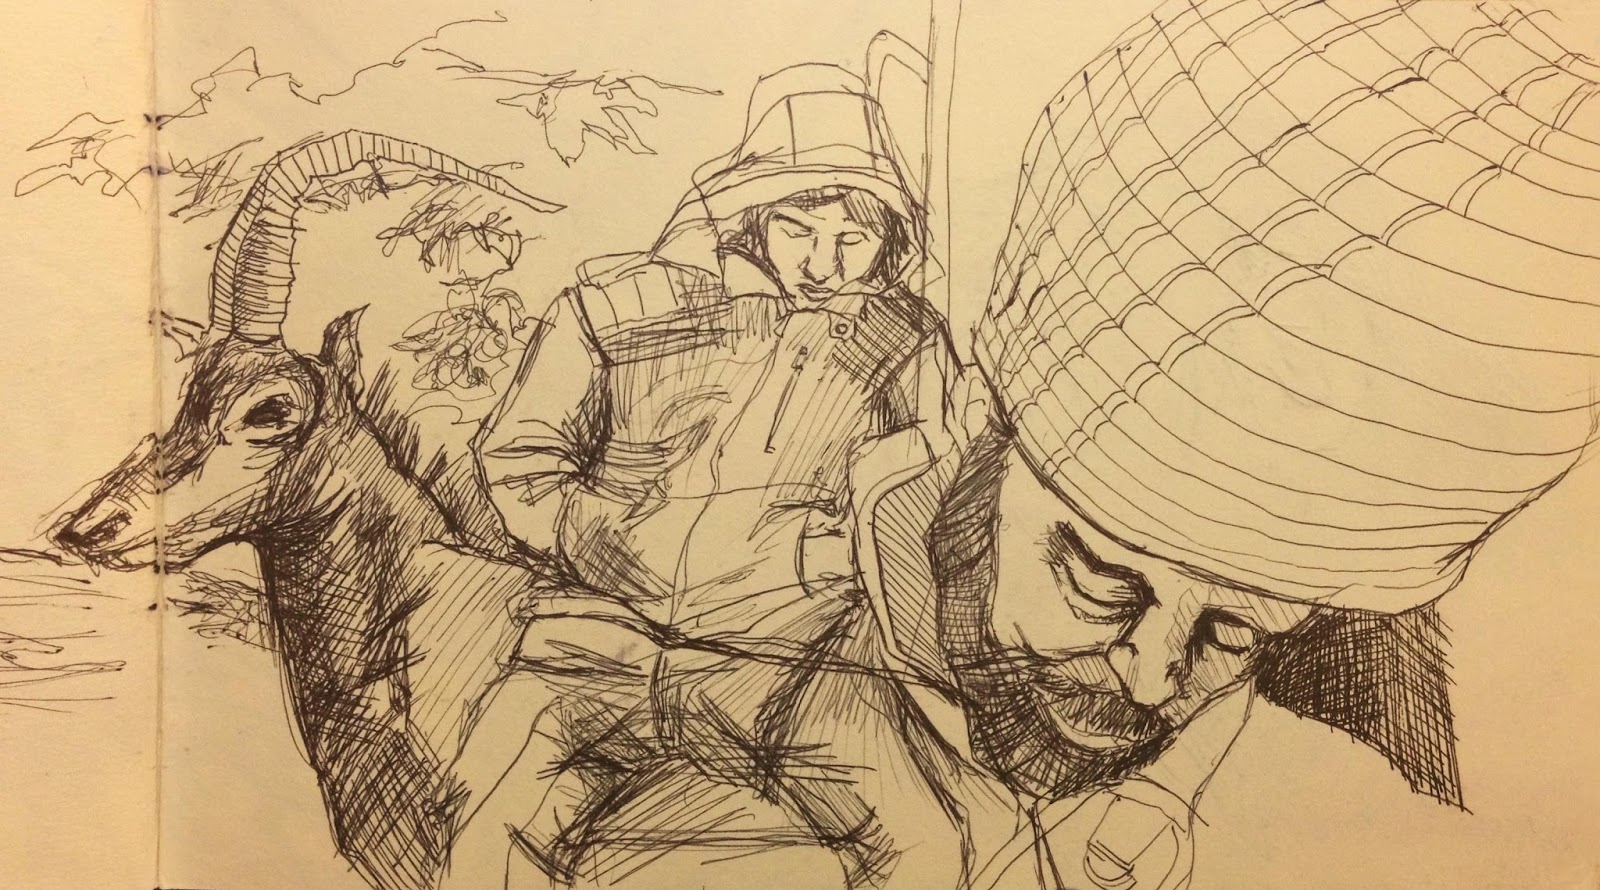 Sleeping Man on Train Sketch